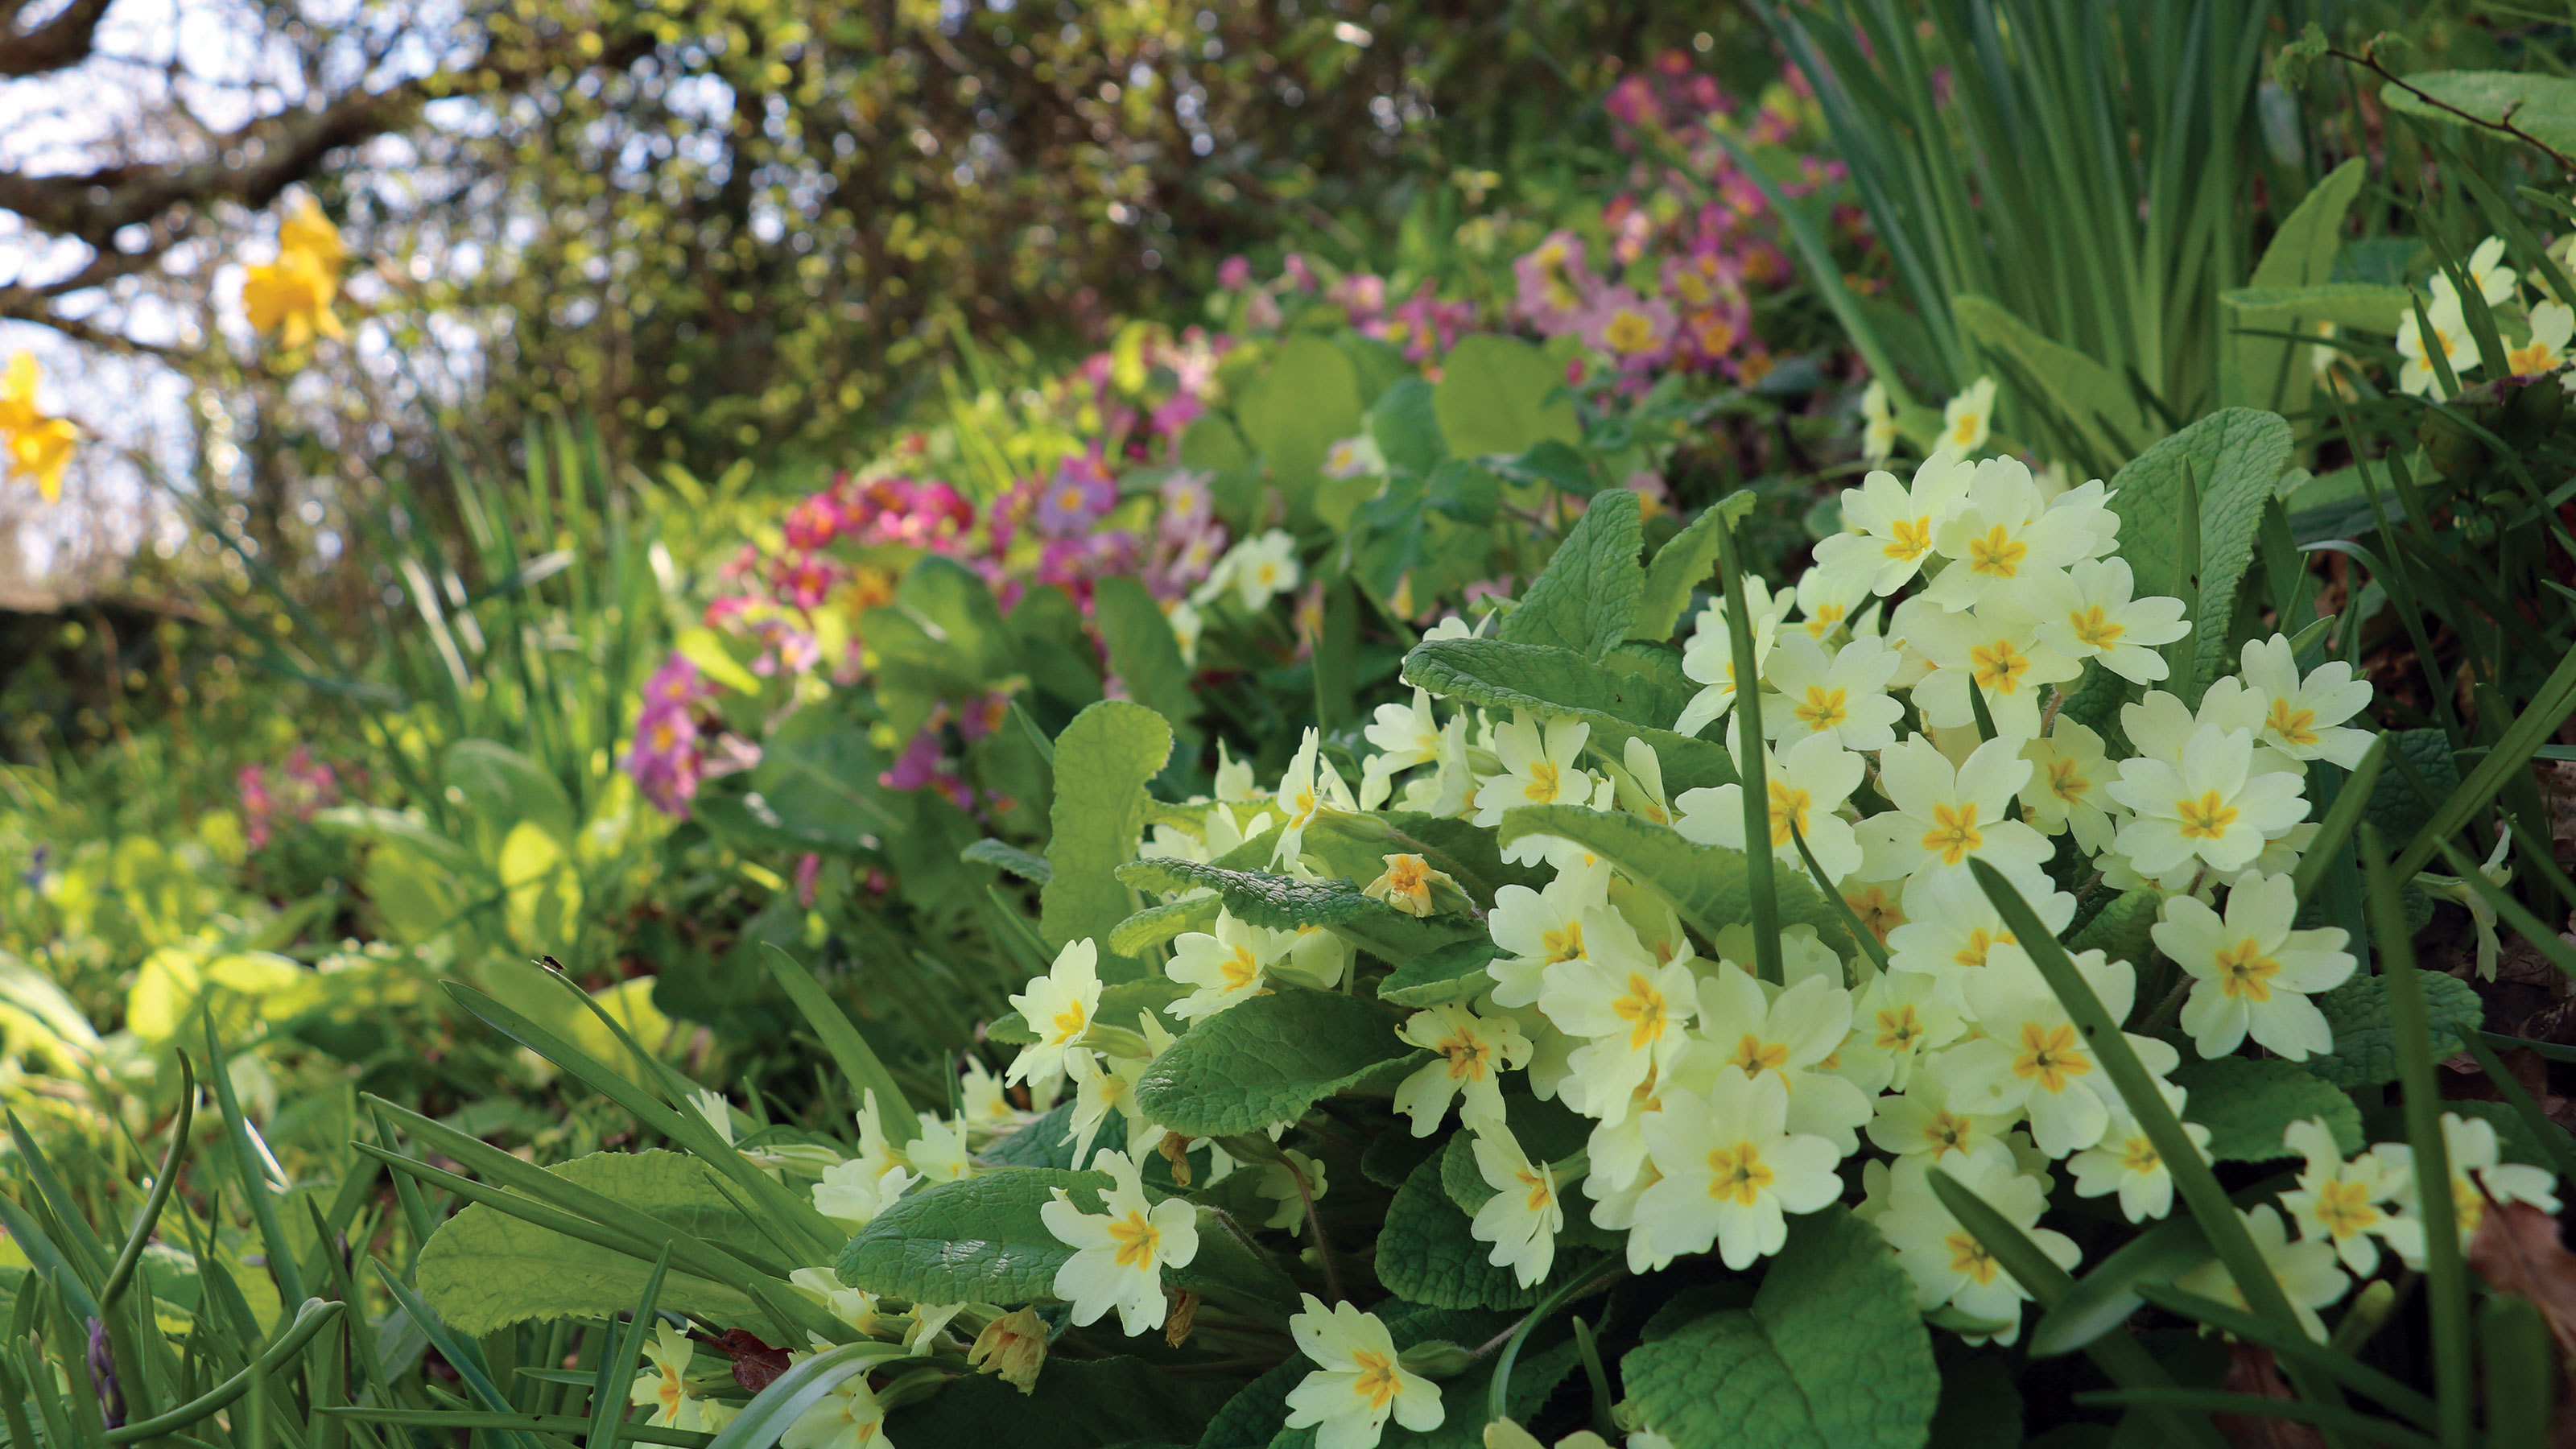 Primroses-under-woodland-canopy-at-Shorefield-Country-Park